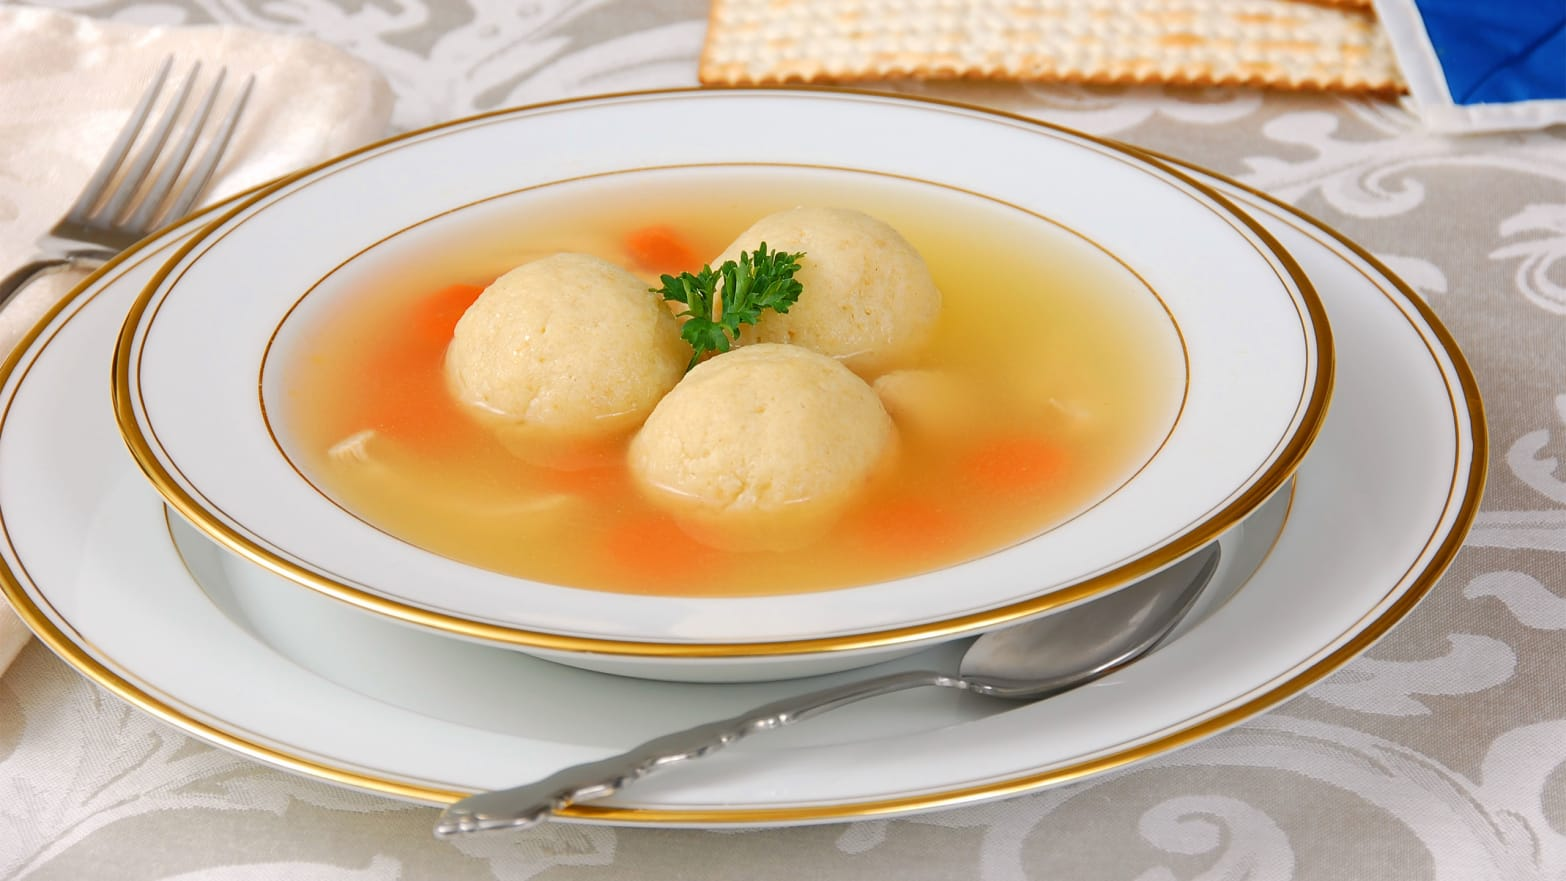 Passover Matzo Ball Soup: Joan Nathan's Recipe From the New Book 'The 100 Most Jewish Foods'